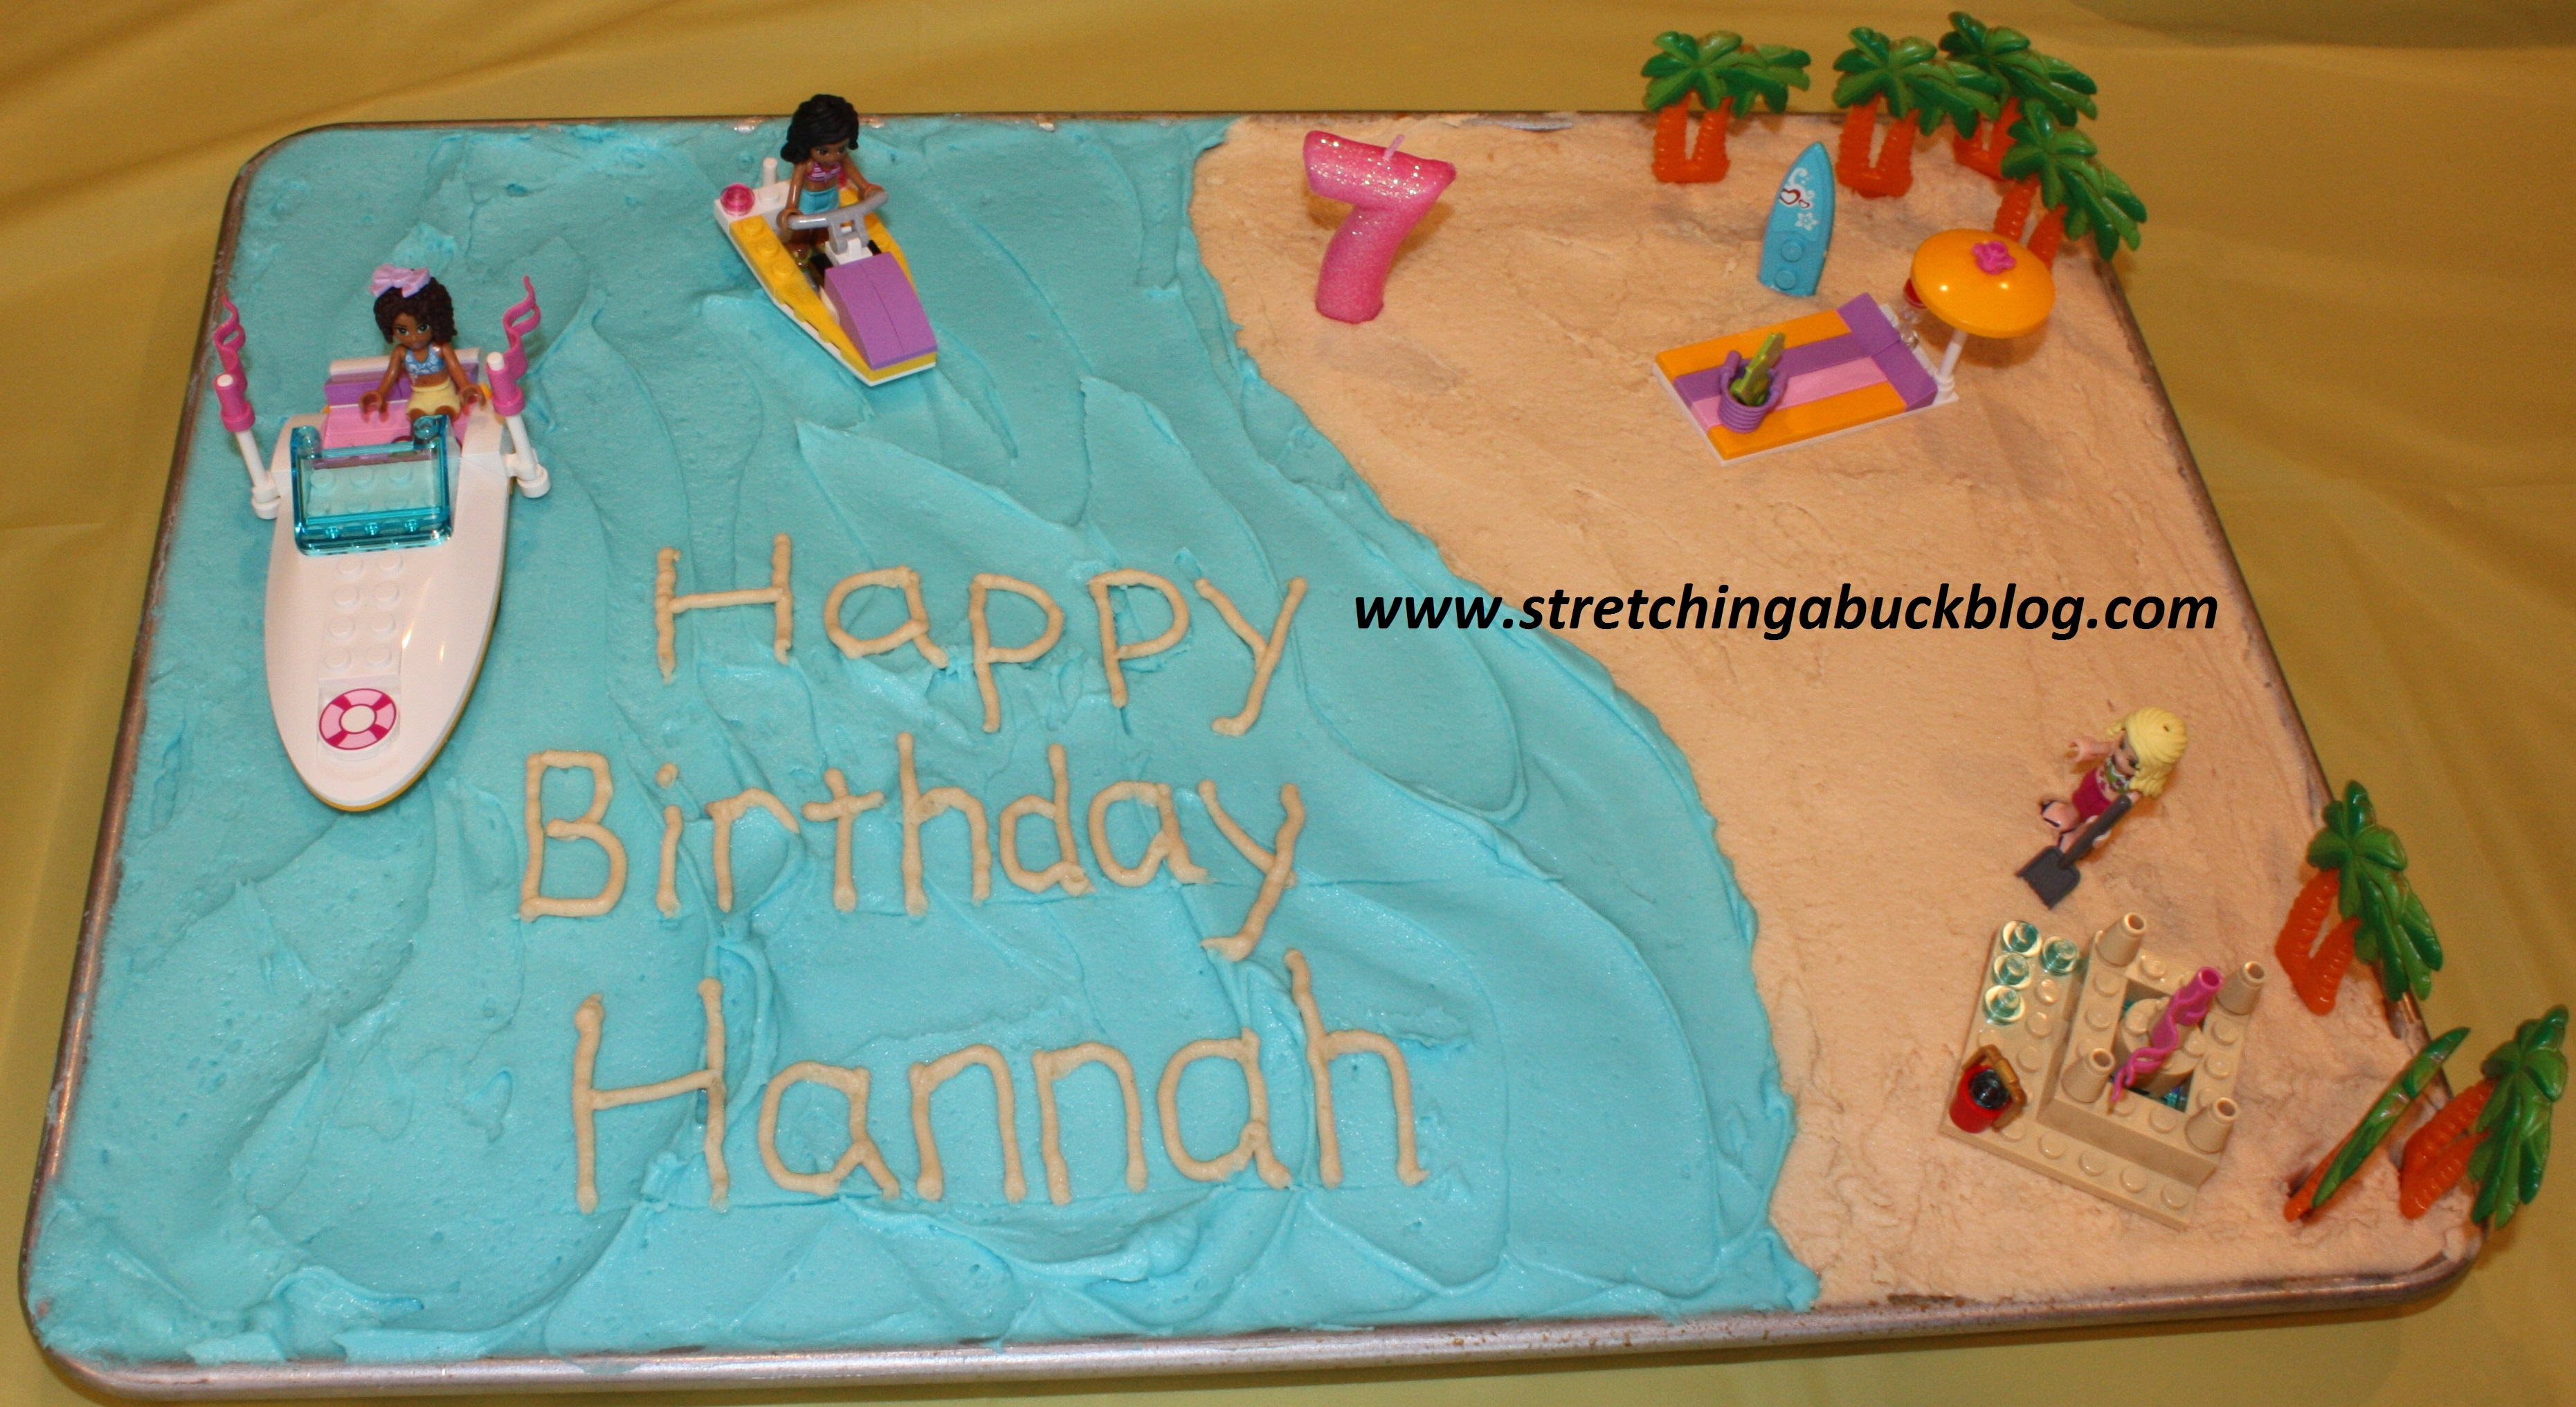 Phenomenal How To Make A Budget Beach Party Birthday Cake Stretching A Buck Personalised Birthday Cards Paralily Jamesorg